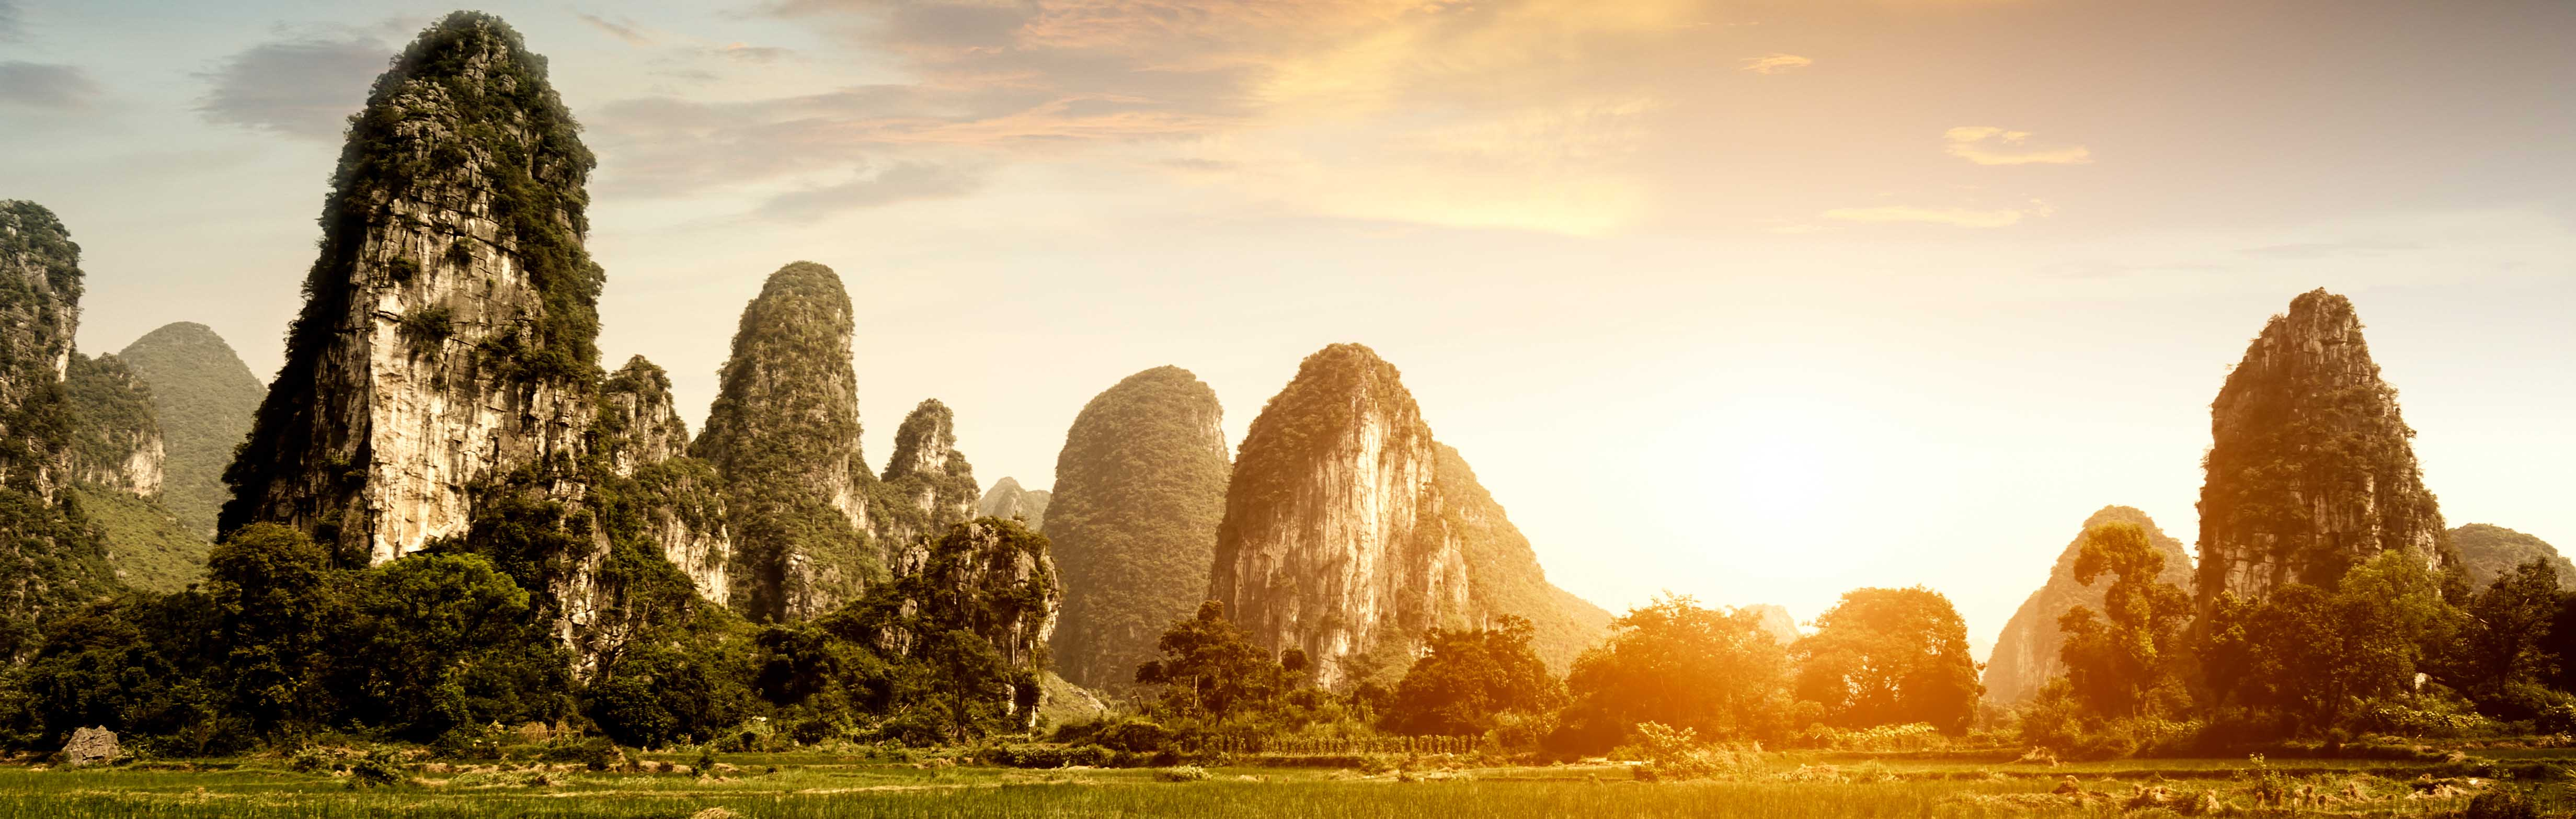 The stunning landscape of Guilin at sunset.